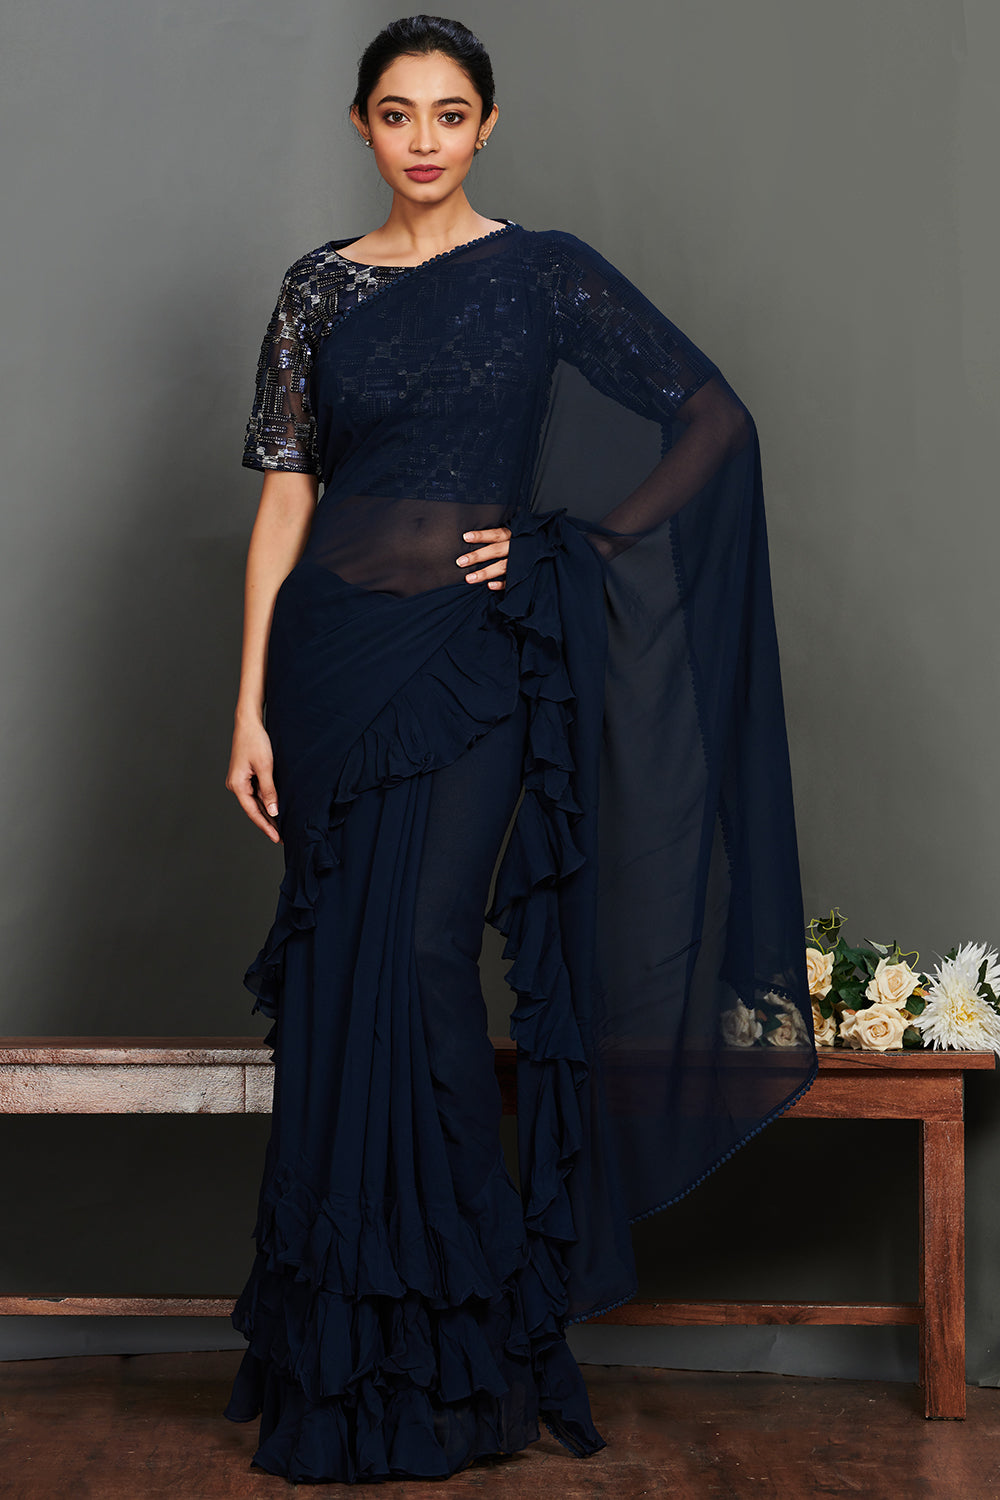 Shop gorgeous dark blue blue georgette ruffle saree online in USA with embellished saree blouse. Make a fashion statement on festive occasions and weddings with designer suits, Indian dresses, Anarkali suits, palazzo suits, designer gowns, sharara suits from Pure Elegance Indian fashion store in USA.-full view